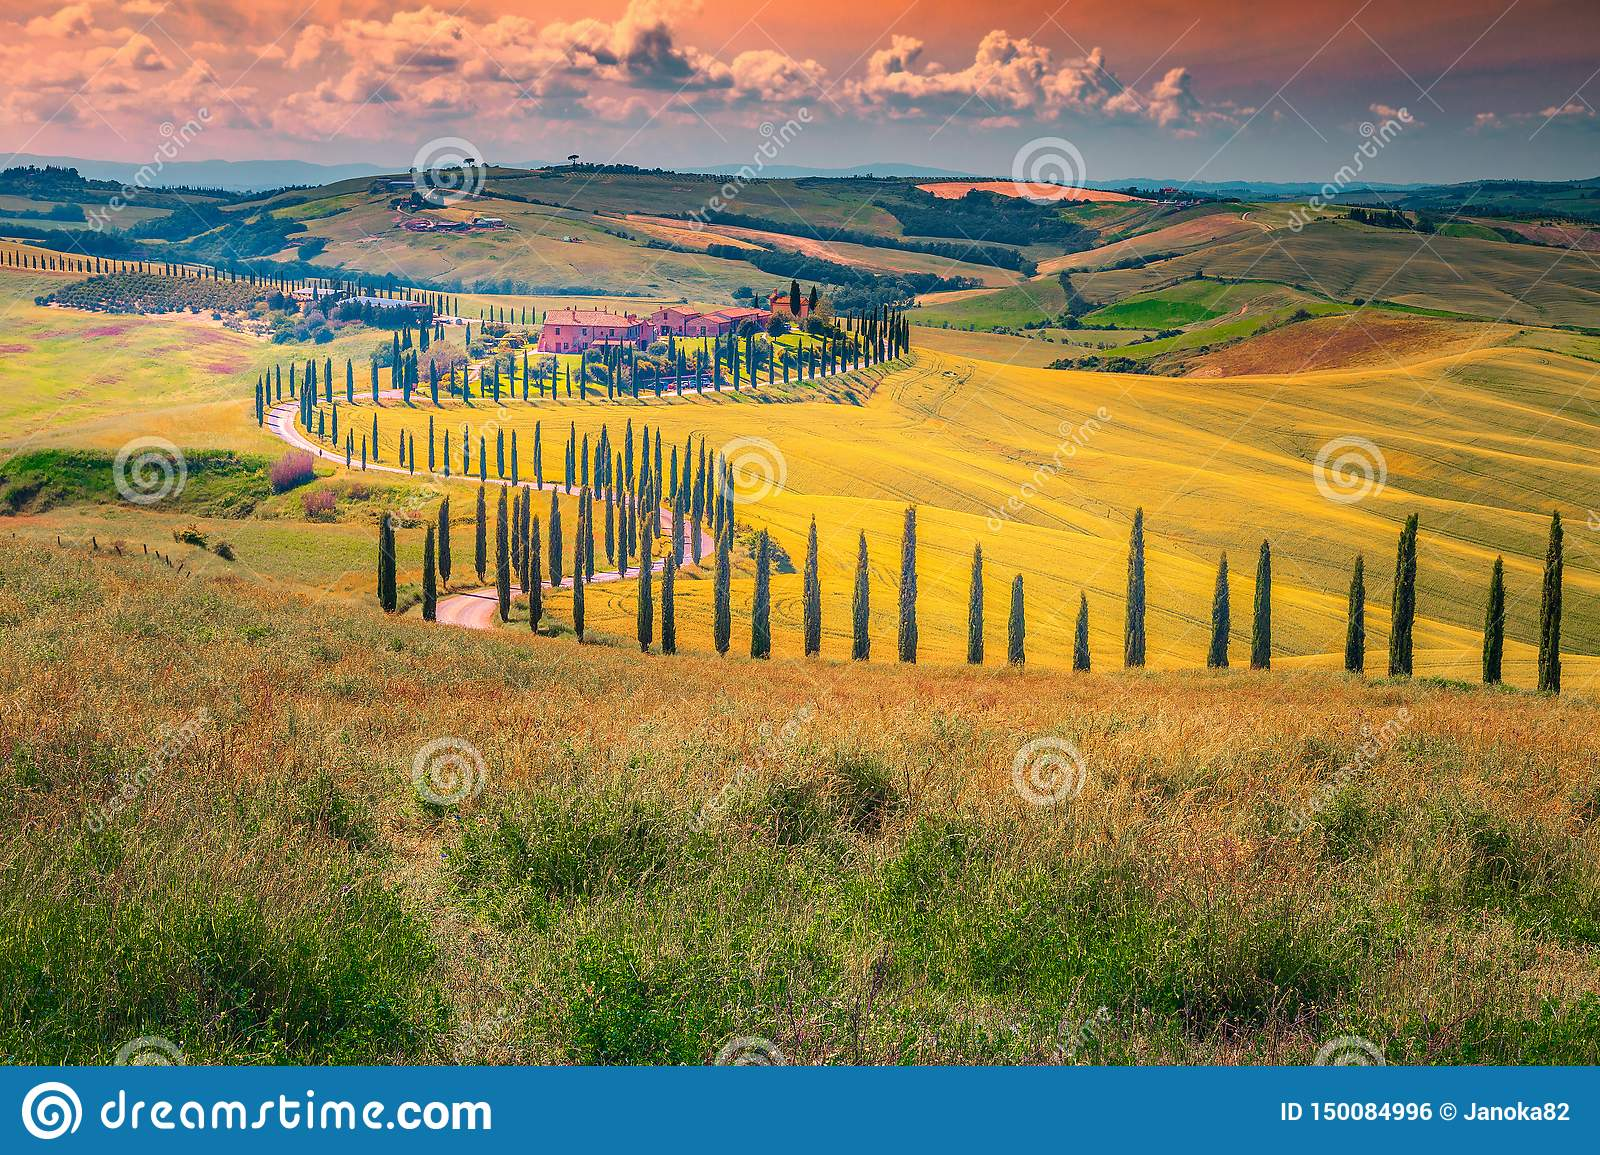 Idyllic Tuscany landscape at sunset with curved rural road, Italy